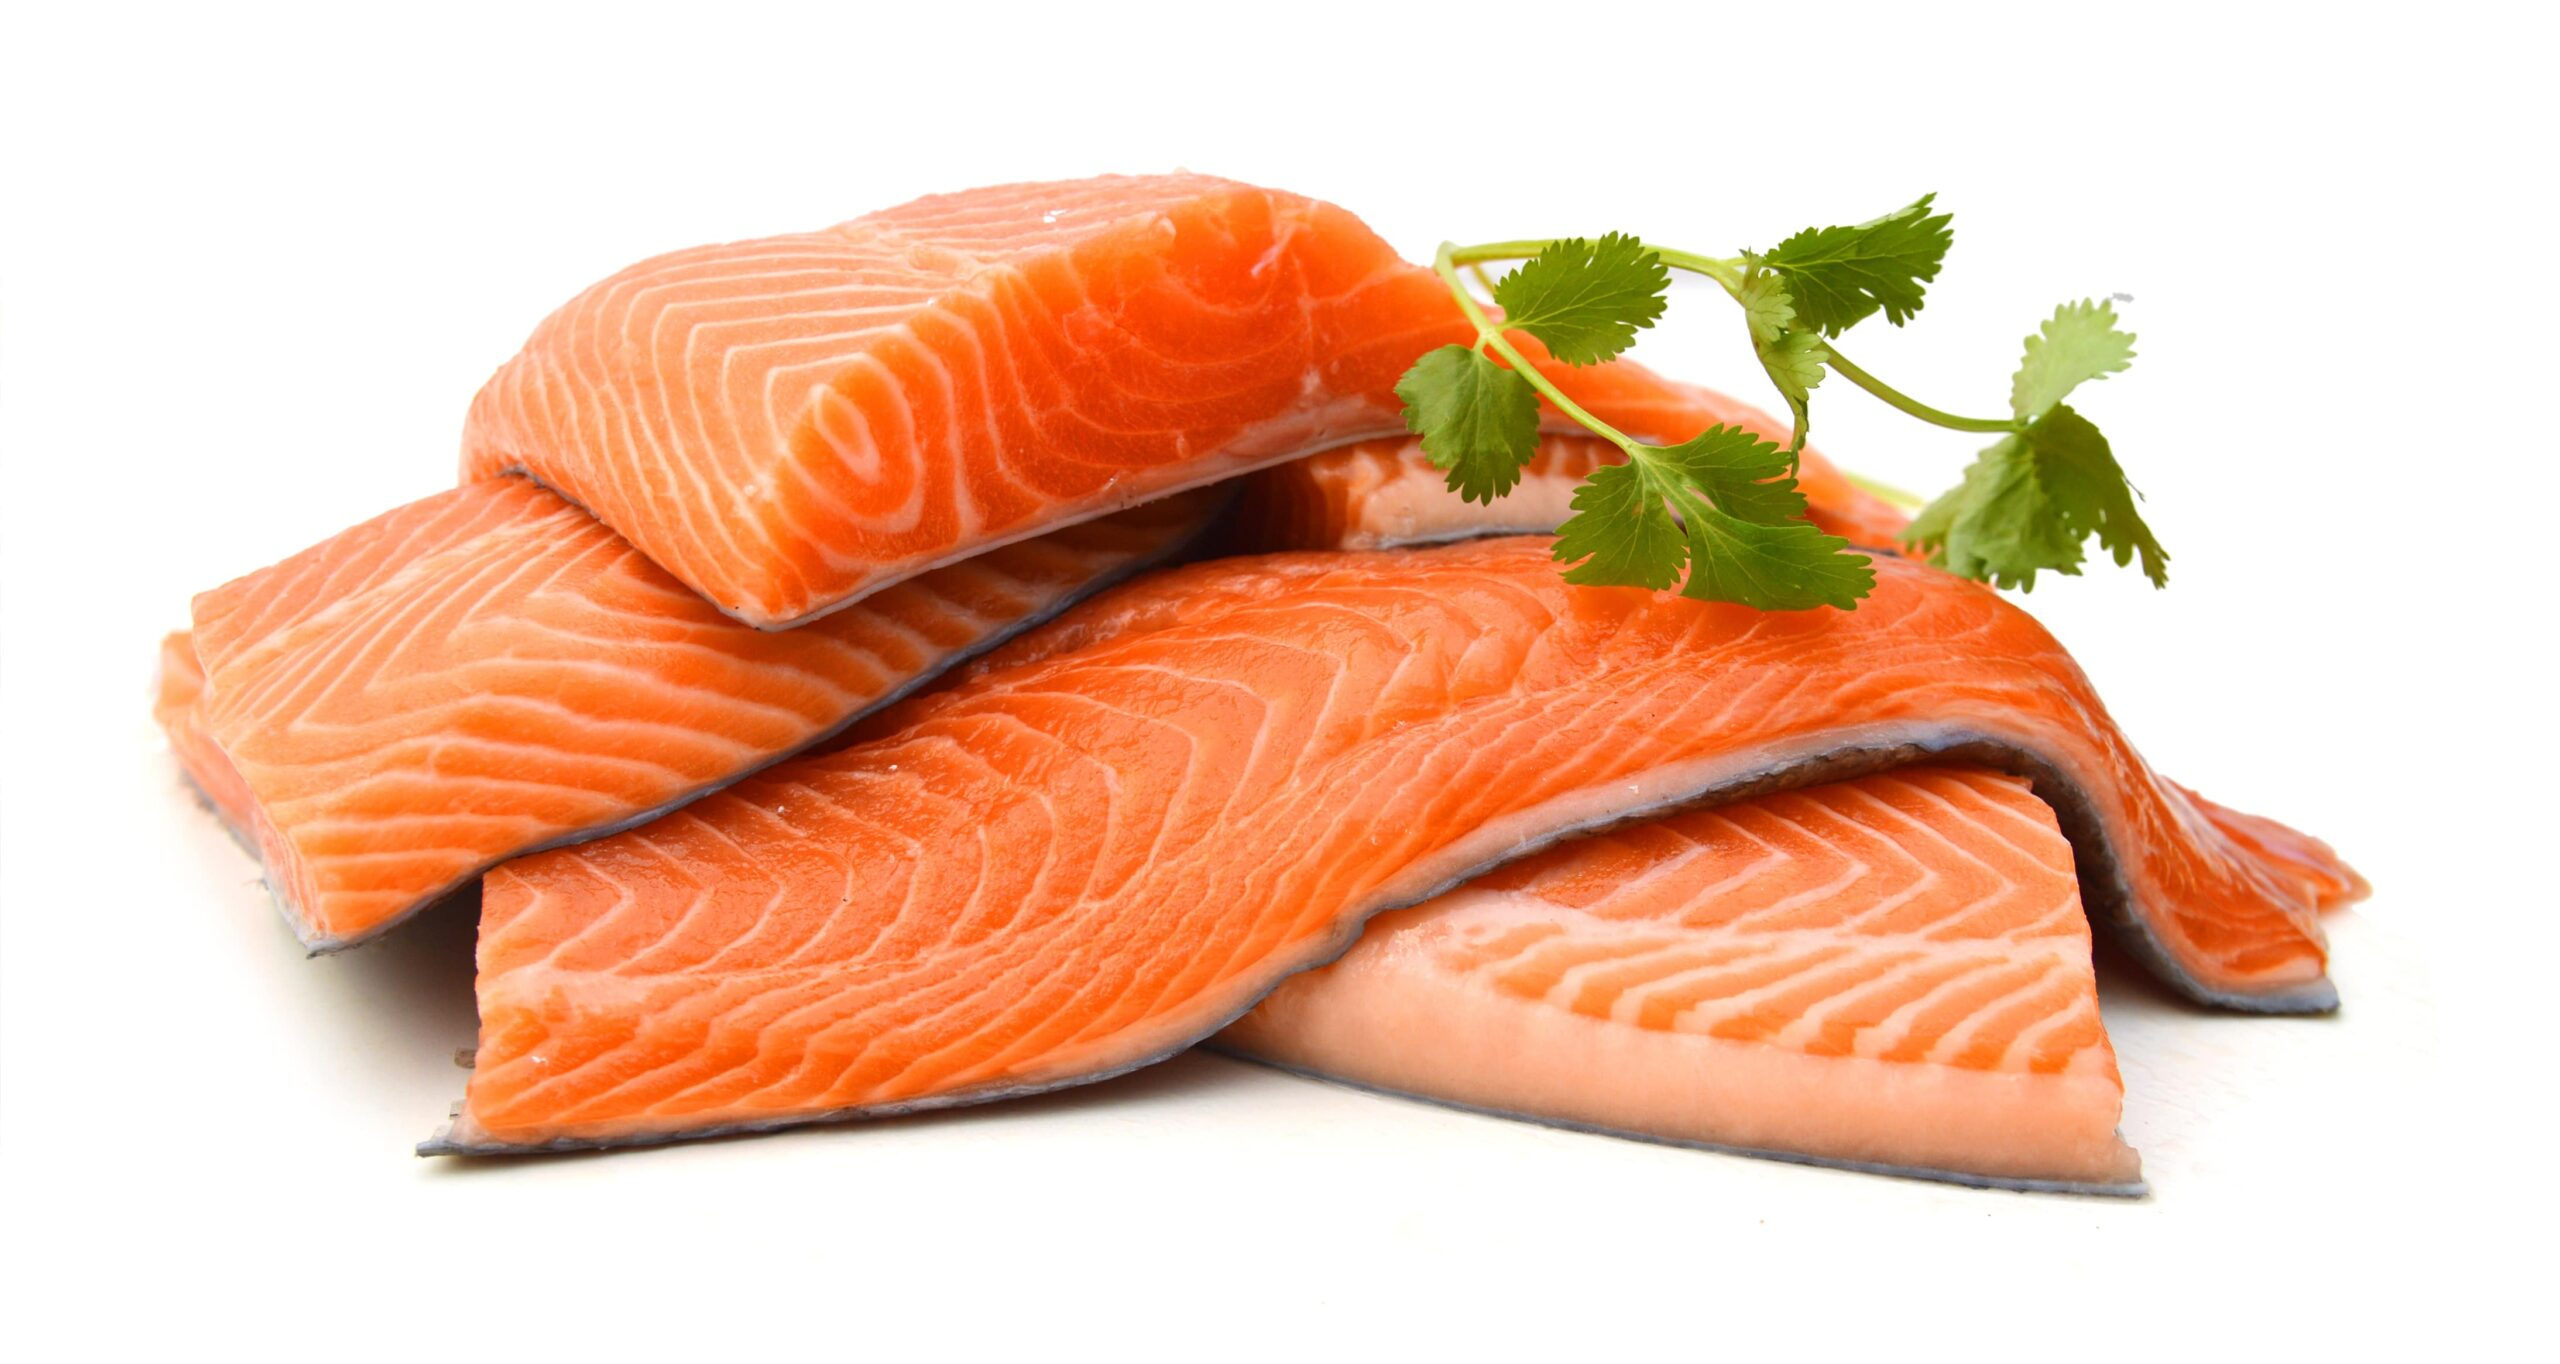 food quality problems fish meat industry food inspection